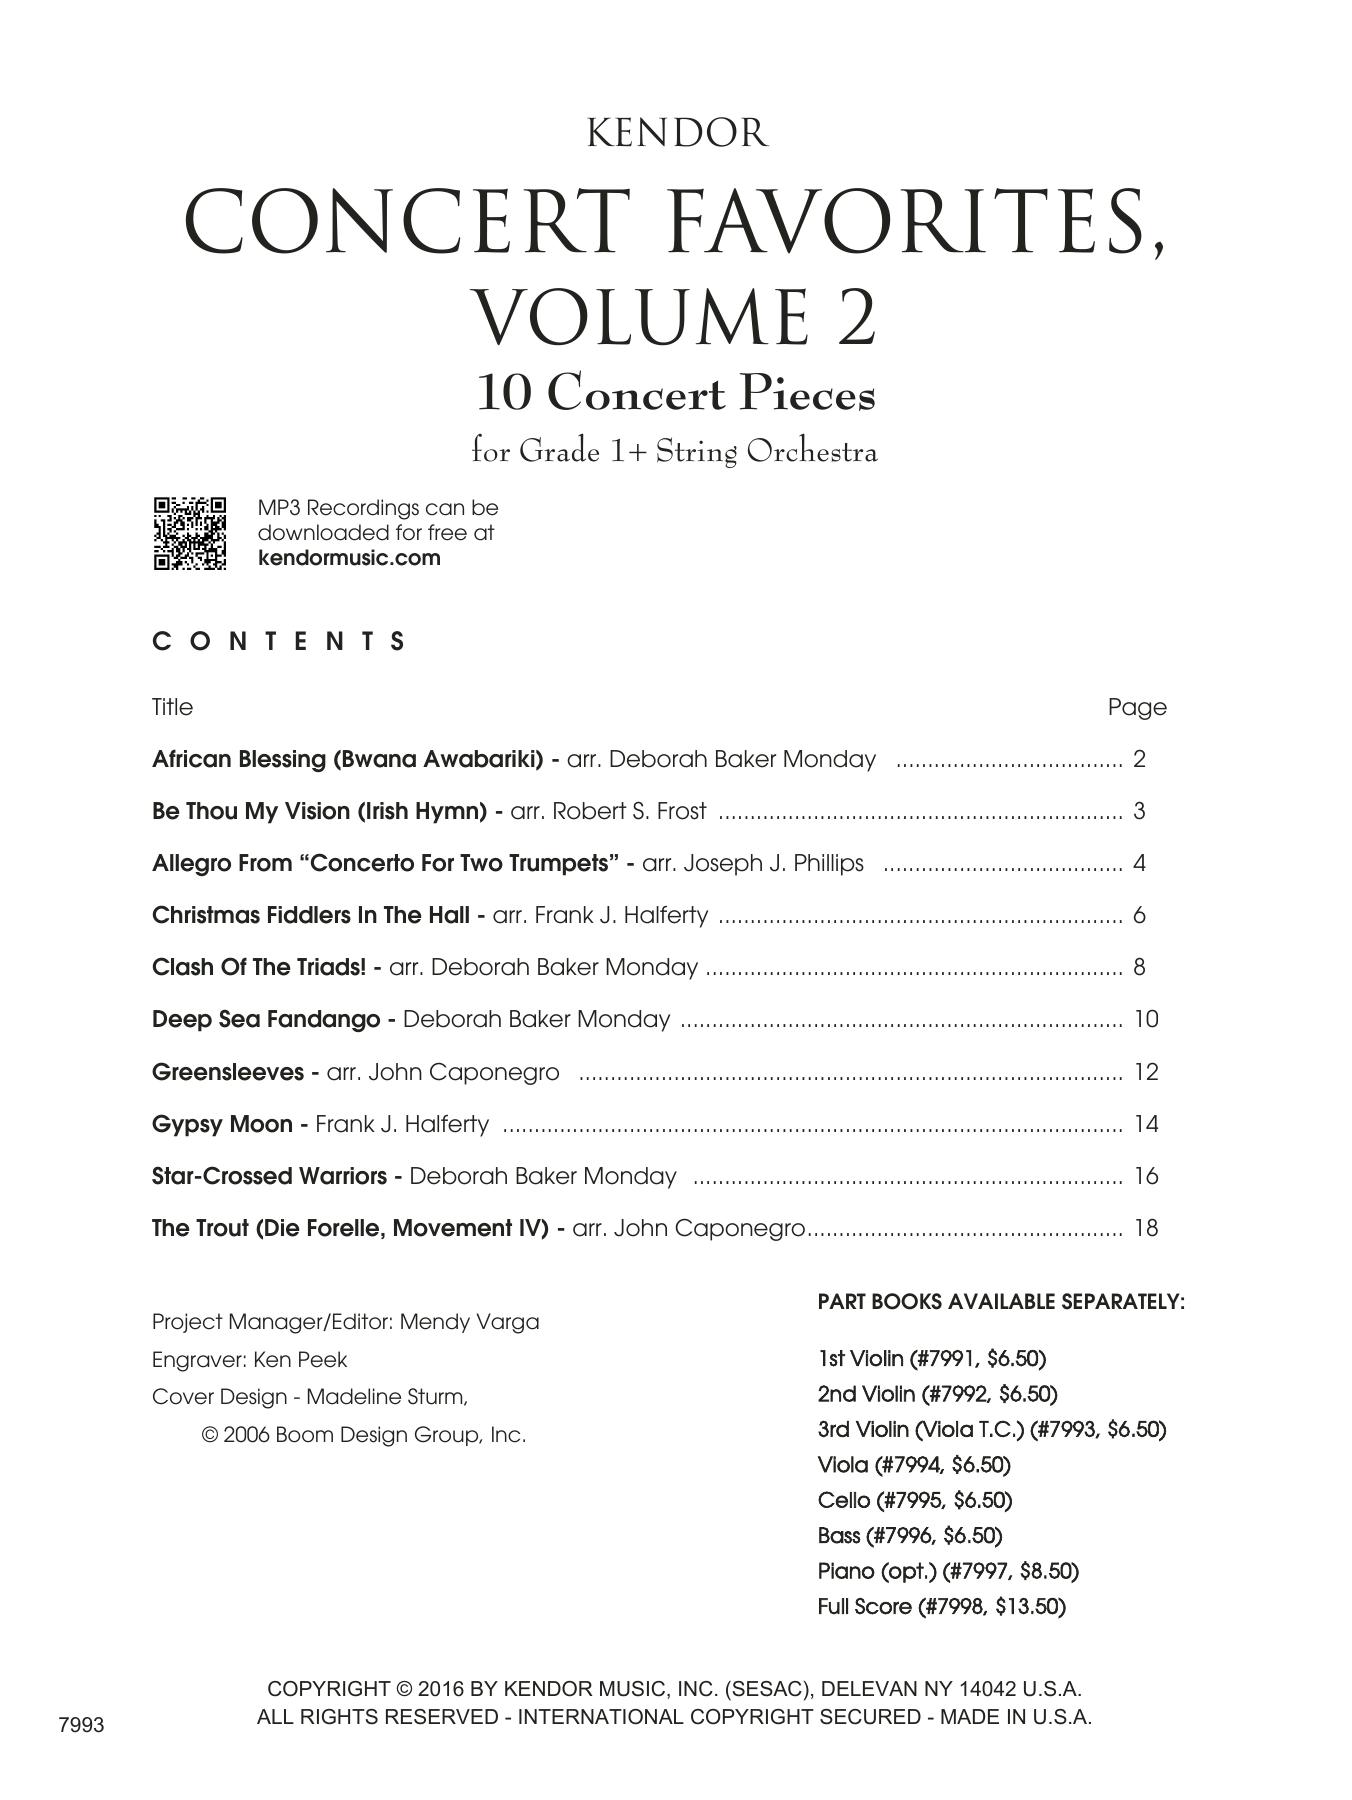 Kendor Concert Favorites, Volume 2 - 3rd Violin (Viola T.C.) - 3rd Violin